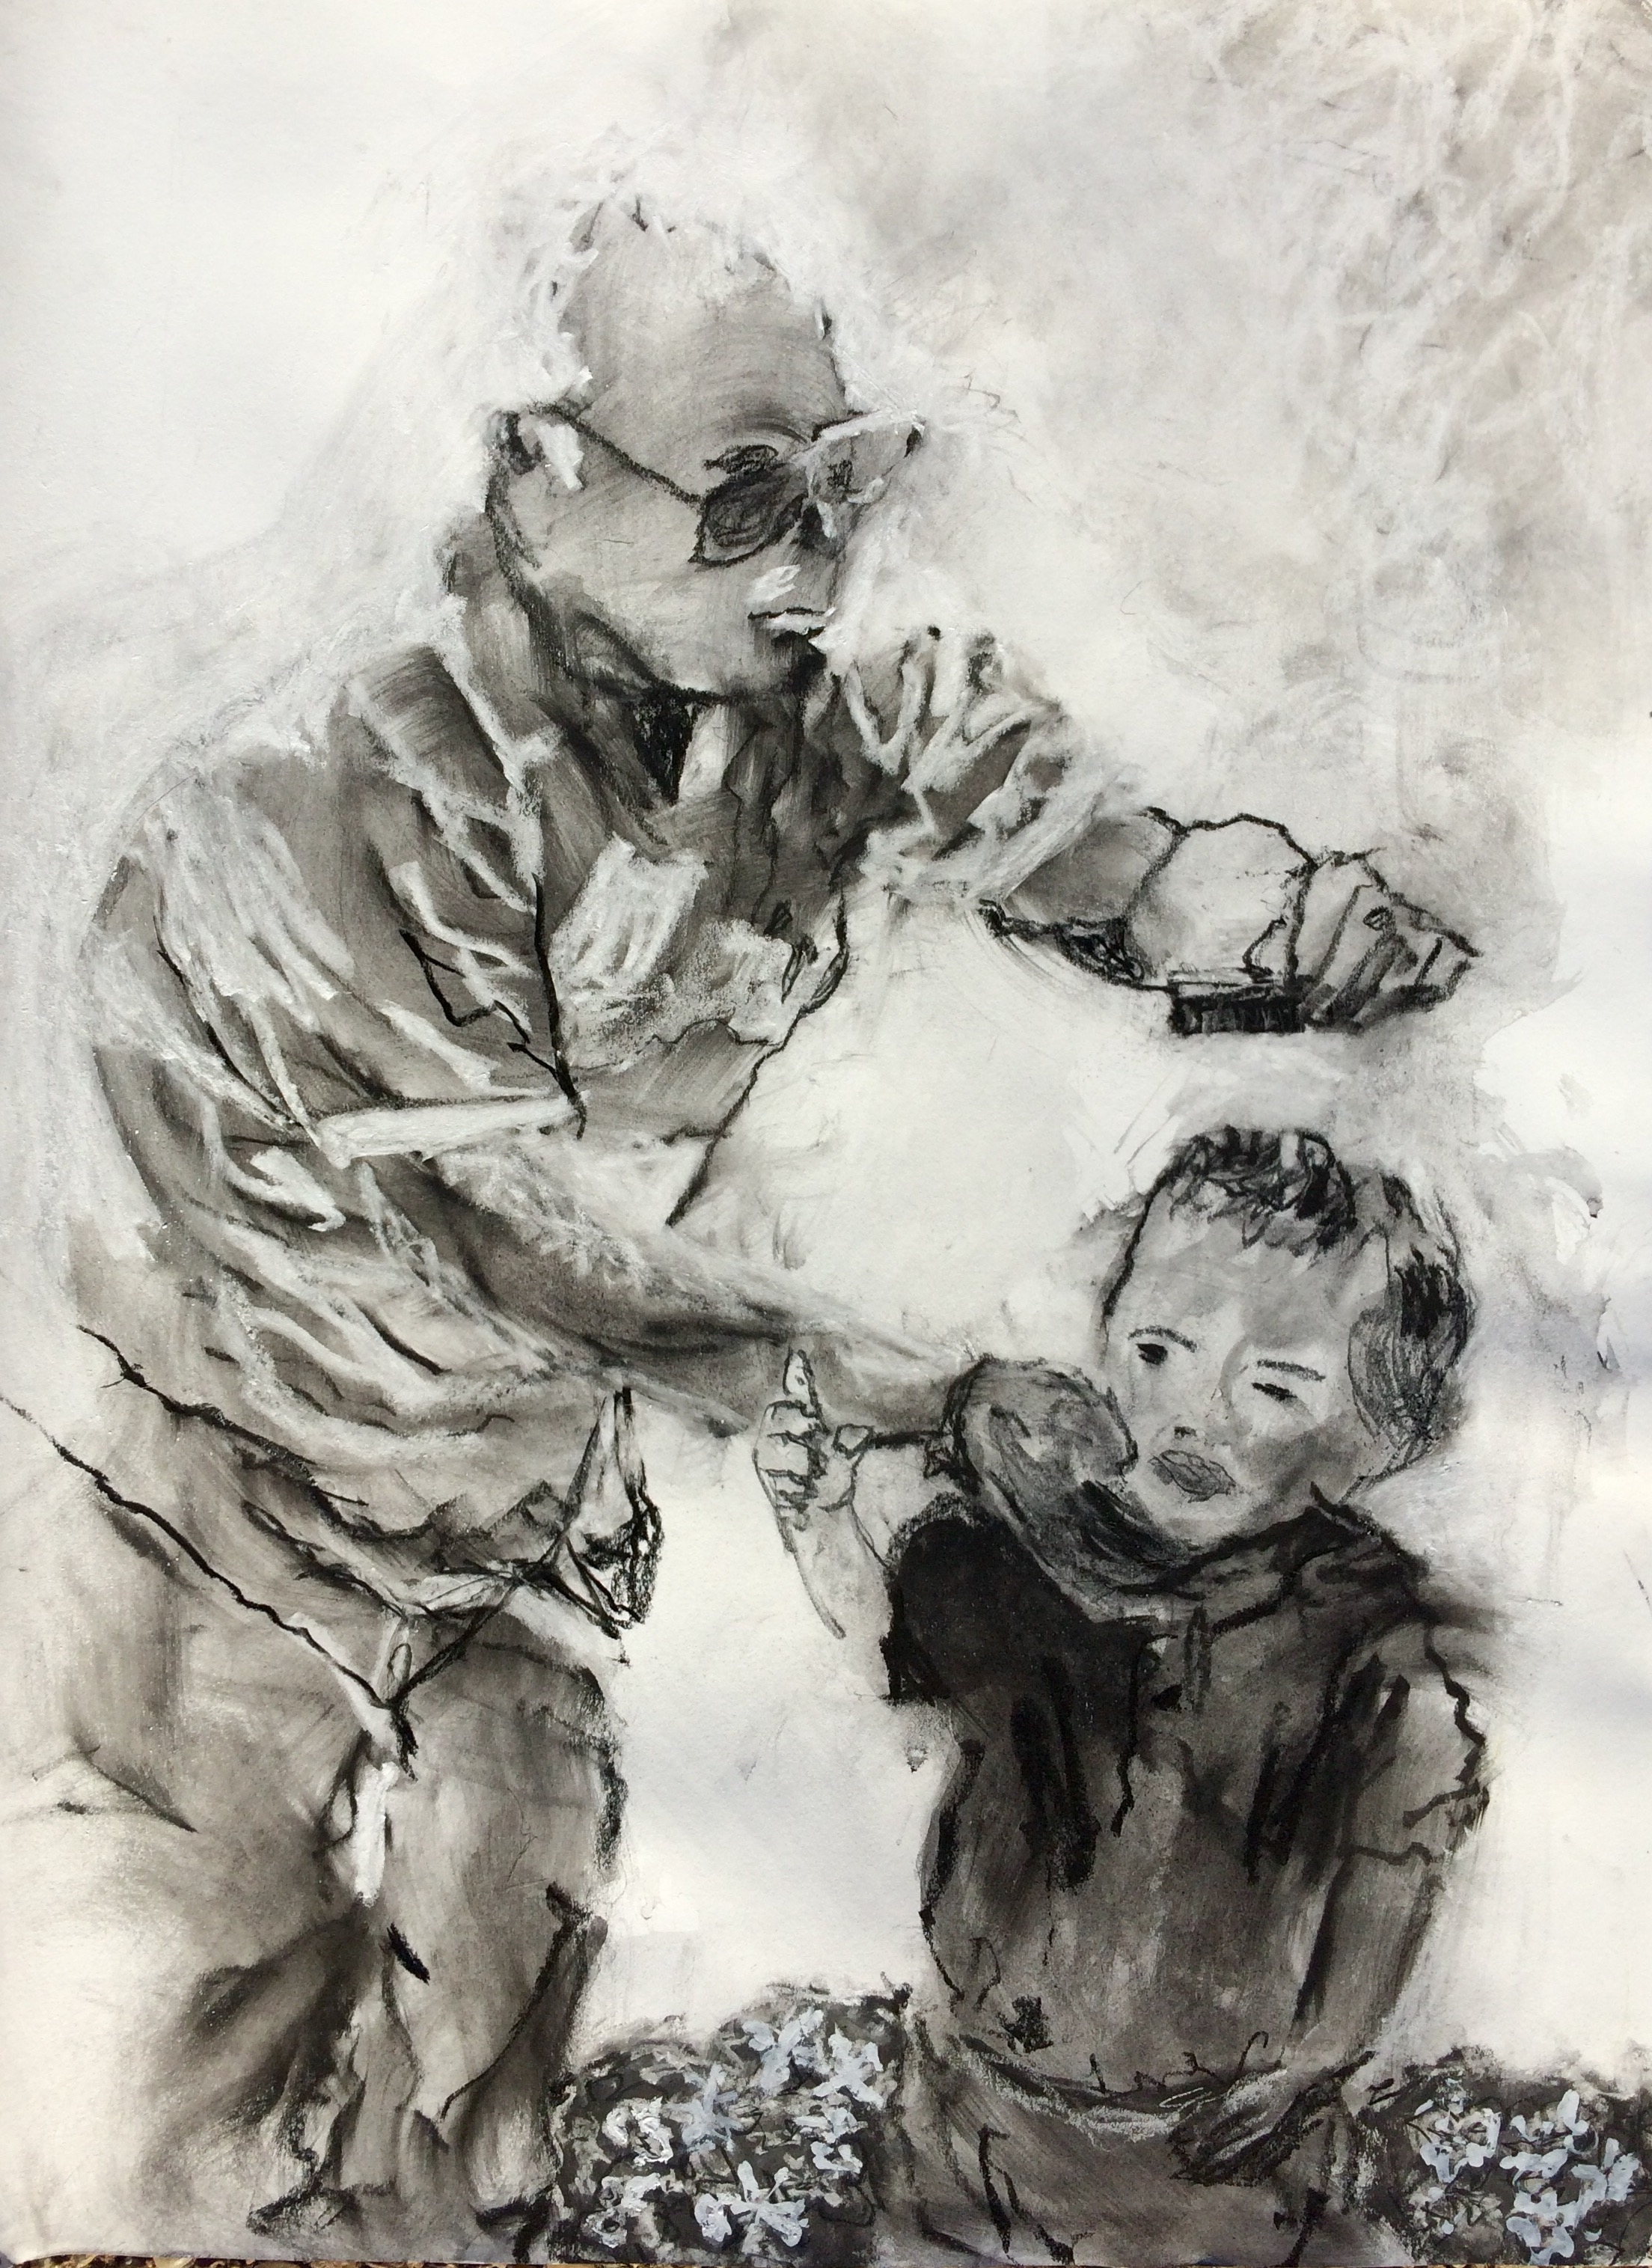 "Many times after he had checked on the west side stores he would stop by my house with a sucker for my kids. I drew the piece above from a photo taken on one such day. I was already to take my kids picture in their Easter clothes.     COMB HERE I   30"" X 22"" charcoal, ink and pastel 2015  Comb Here This piece is inspired by an out of focus photo I took in 1993.  My father stopped by my home as I was taking my son's Easter photo. To make sure every hair was in place my father of little hair whipped out the comb he always carried in his shirt pocket. The quality of the photo was poor but the moment was priceless."